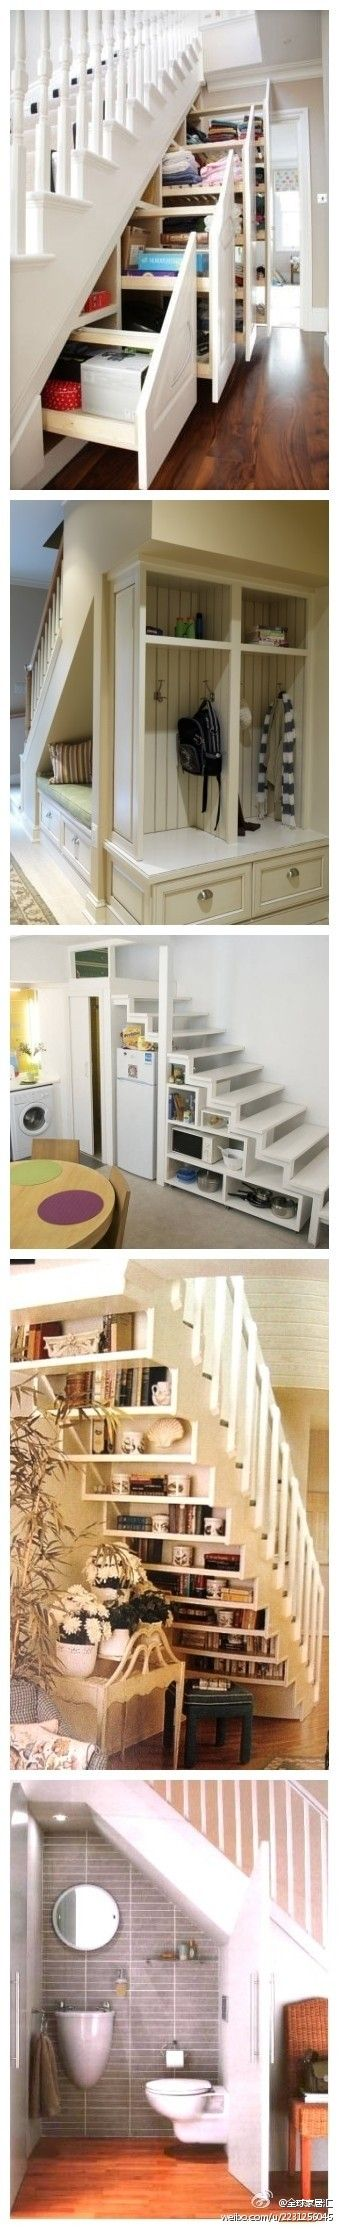 Awesome use of space!!: Spaces Under Stairs, Understair, Stairs Storage, Stair Storage, Cool Ideas, Small Spaces, Stairs Ideas, Great Ideas, Storage Ideas